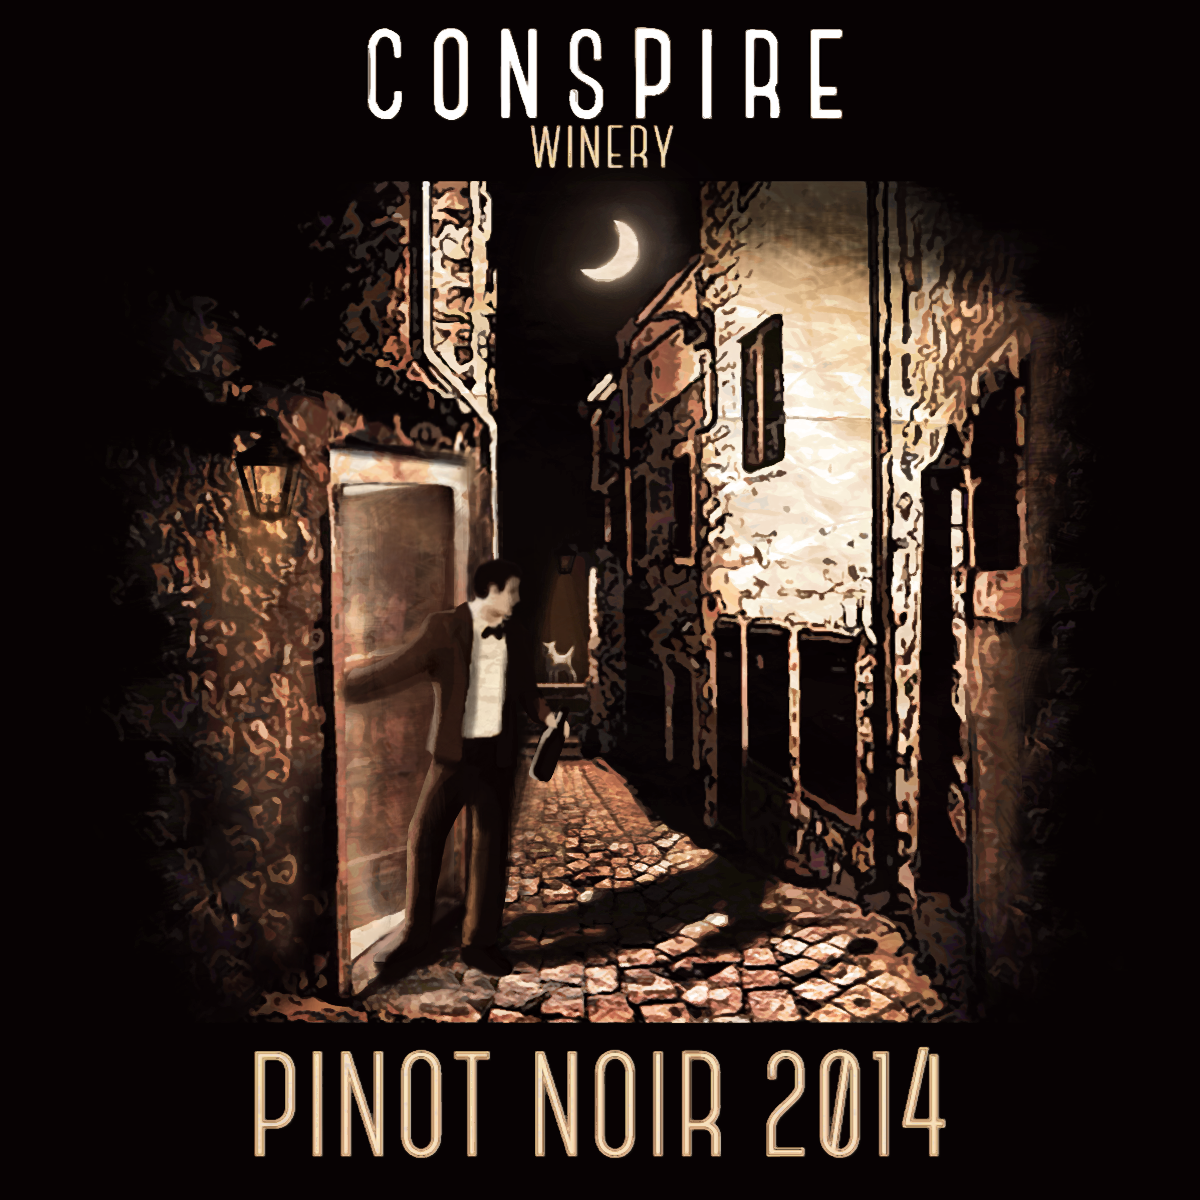 Conspire Winery - First Label